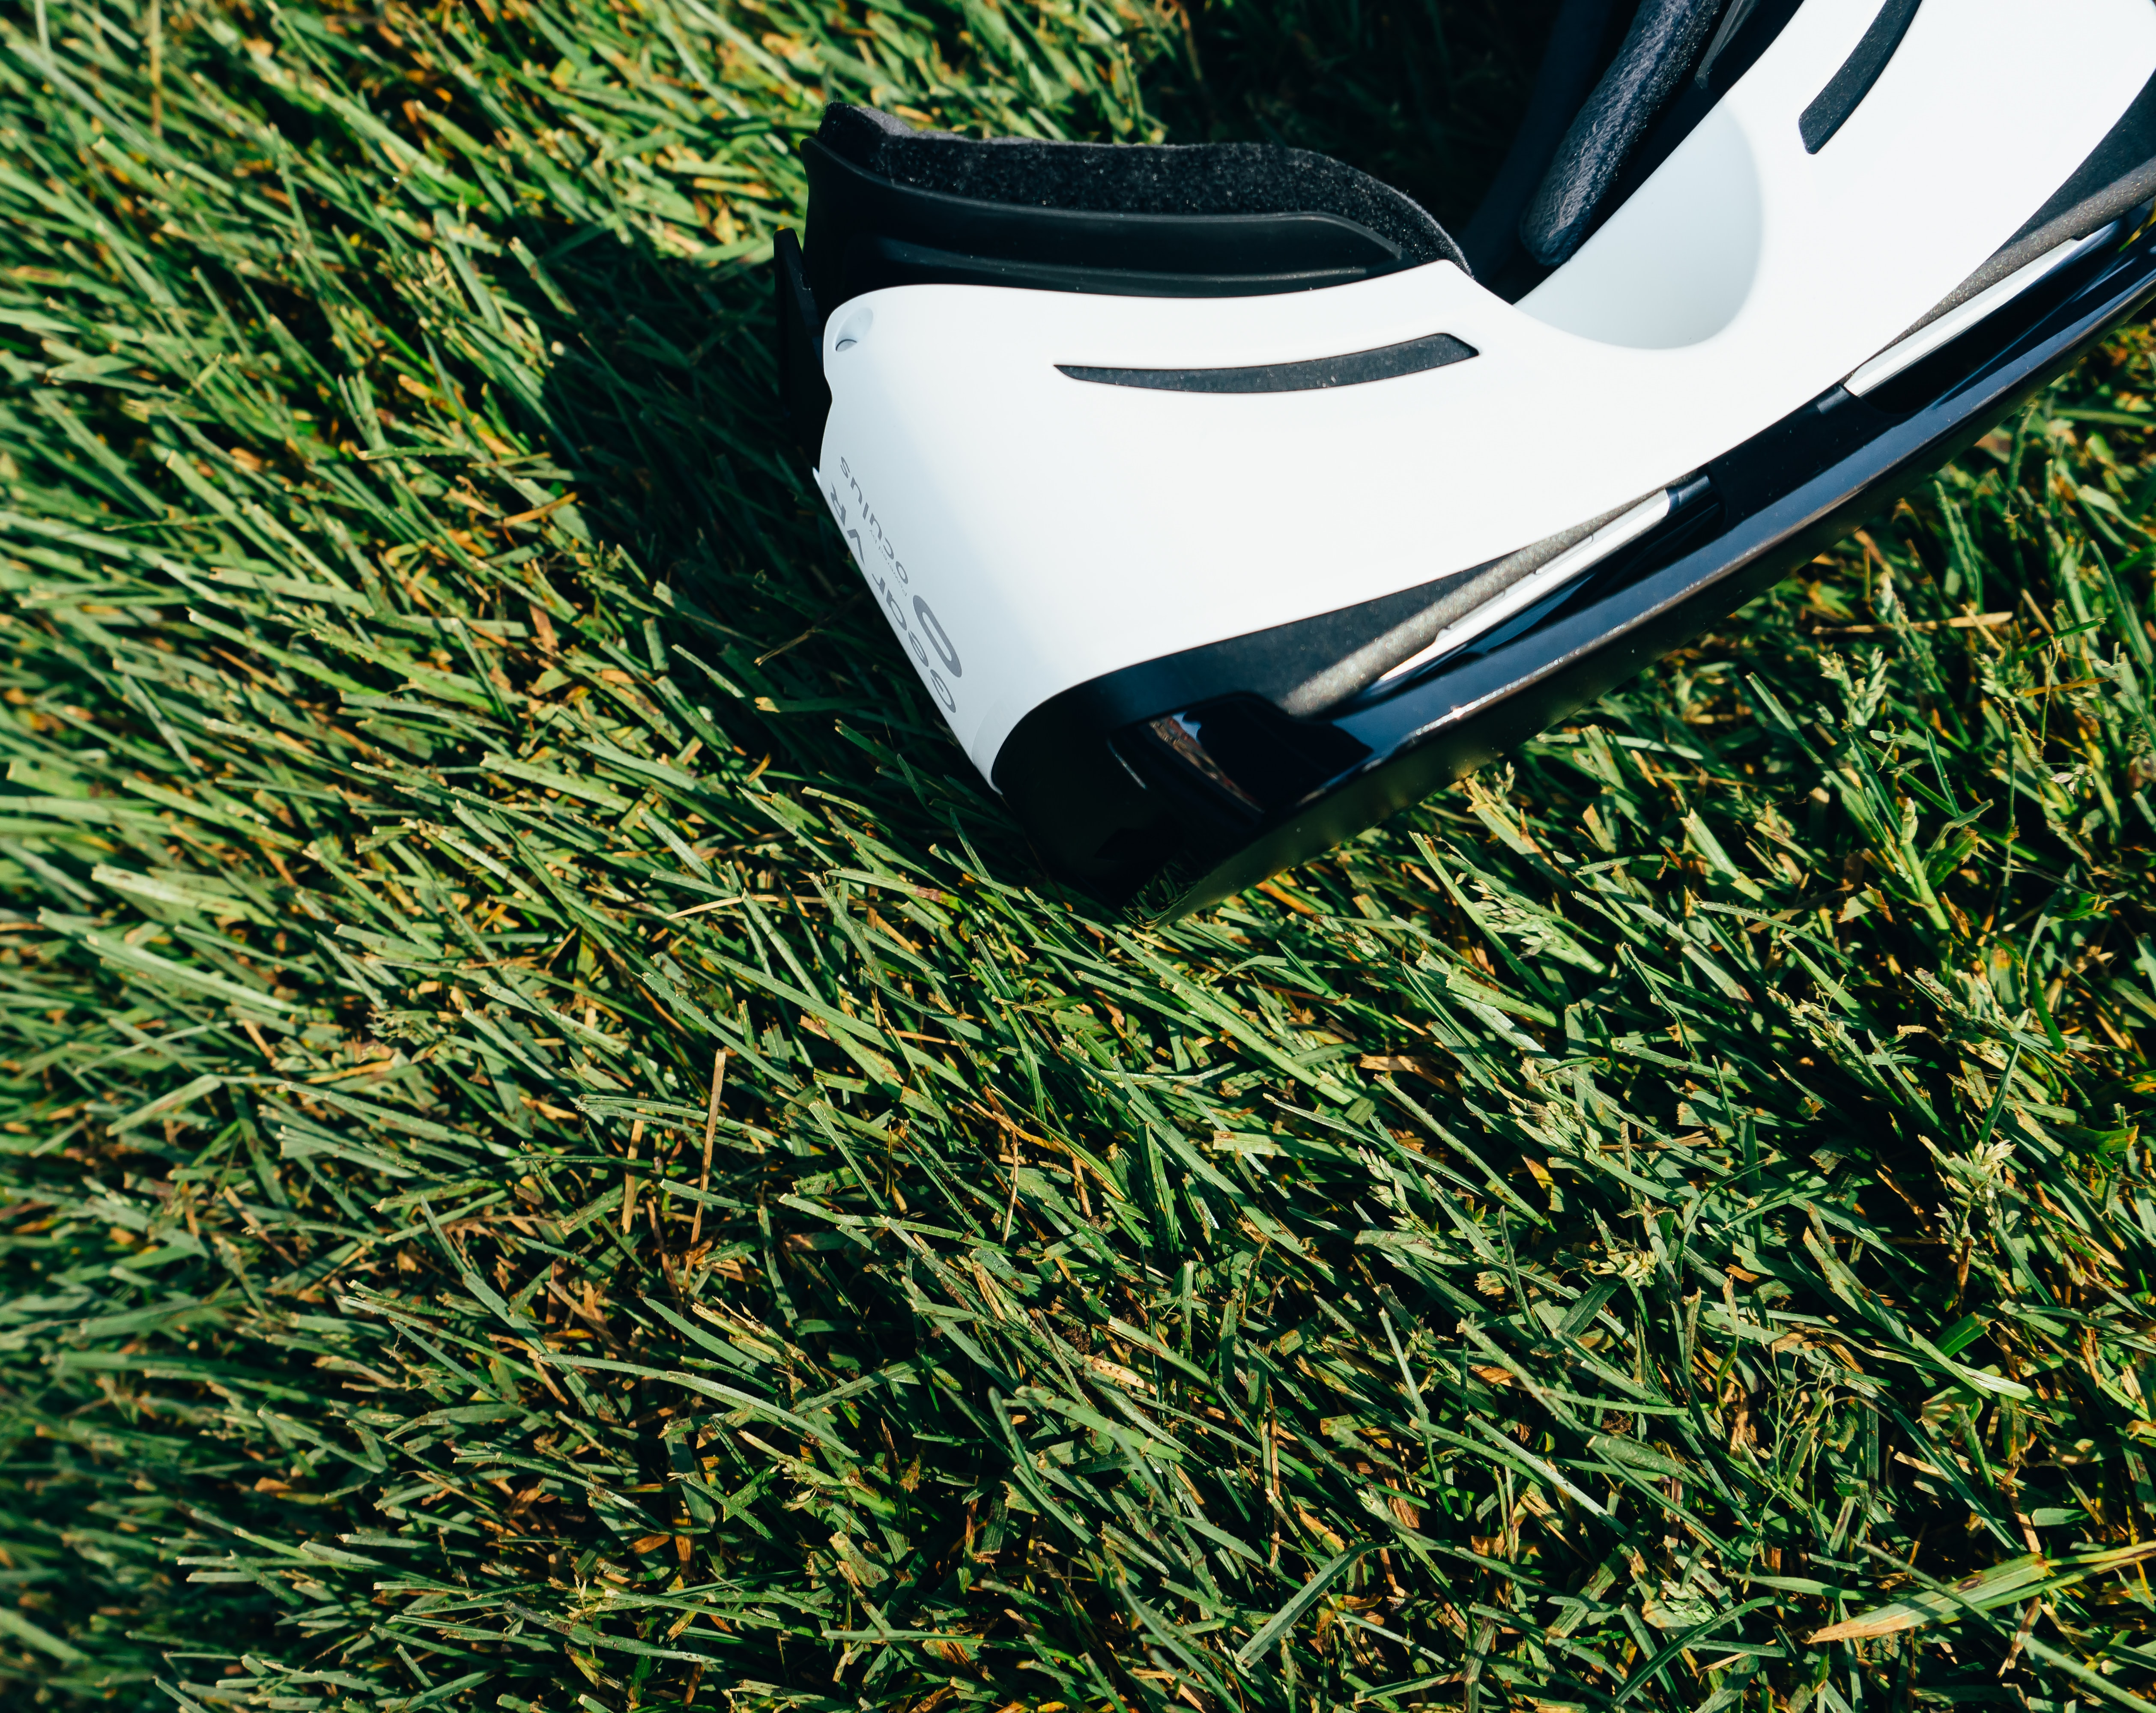 A Gear VR Oculus headset resting on grass during a sunny day